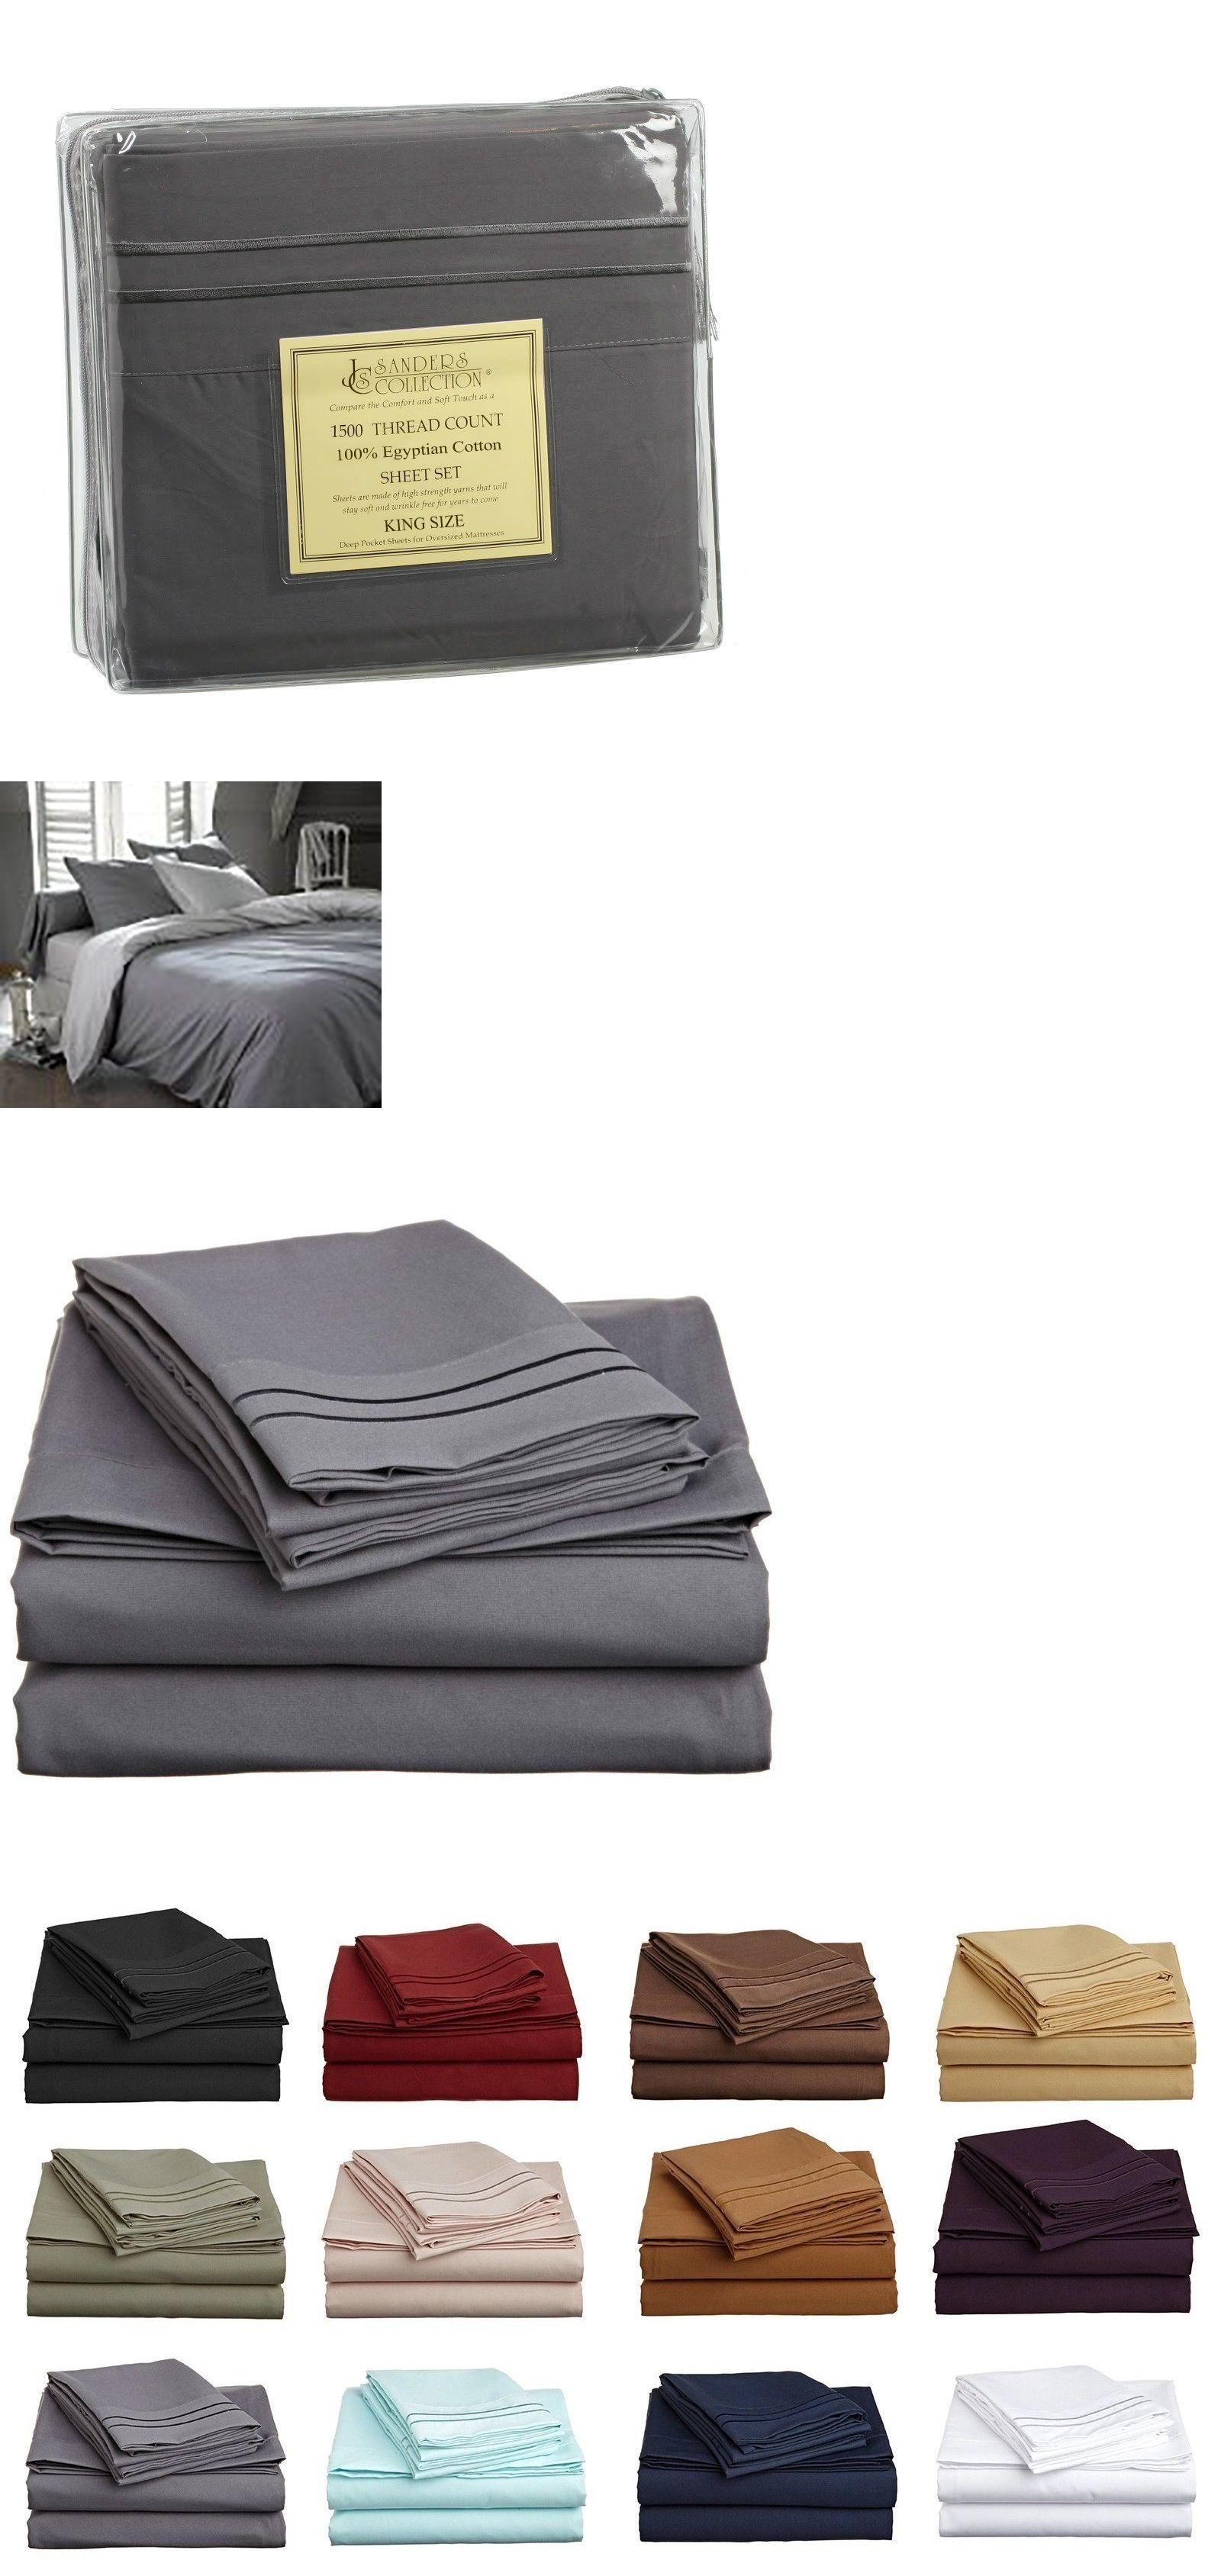 Sheets and pillowcases tc thread count luxury egyptian